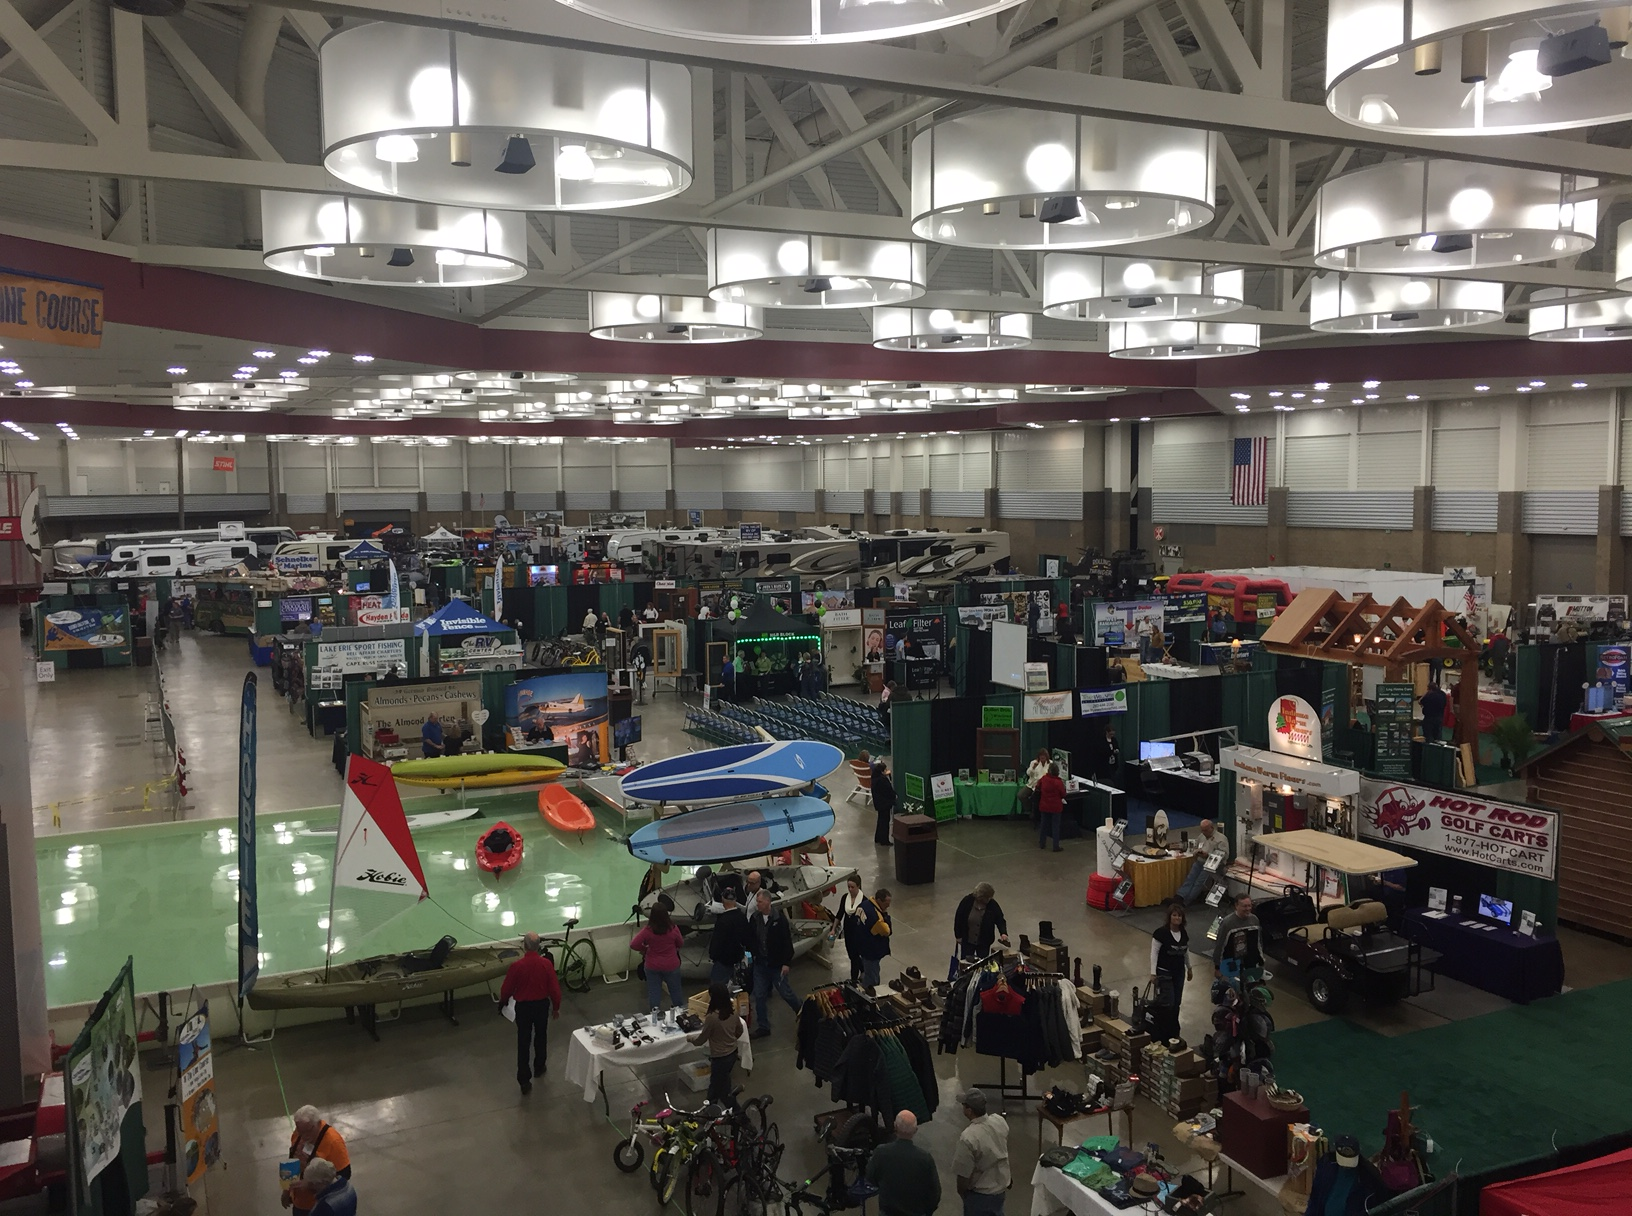 Photo from the 2015 Outdoor Sports, Lake & Cabin Show_78379